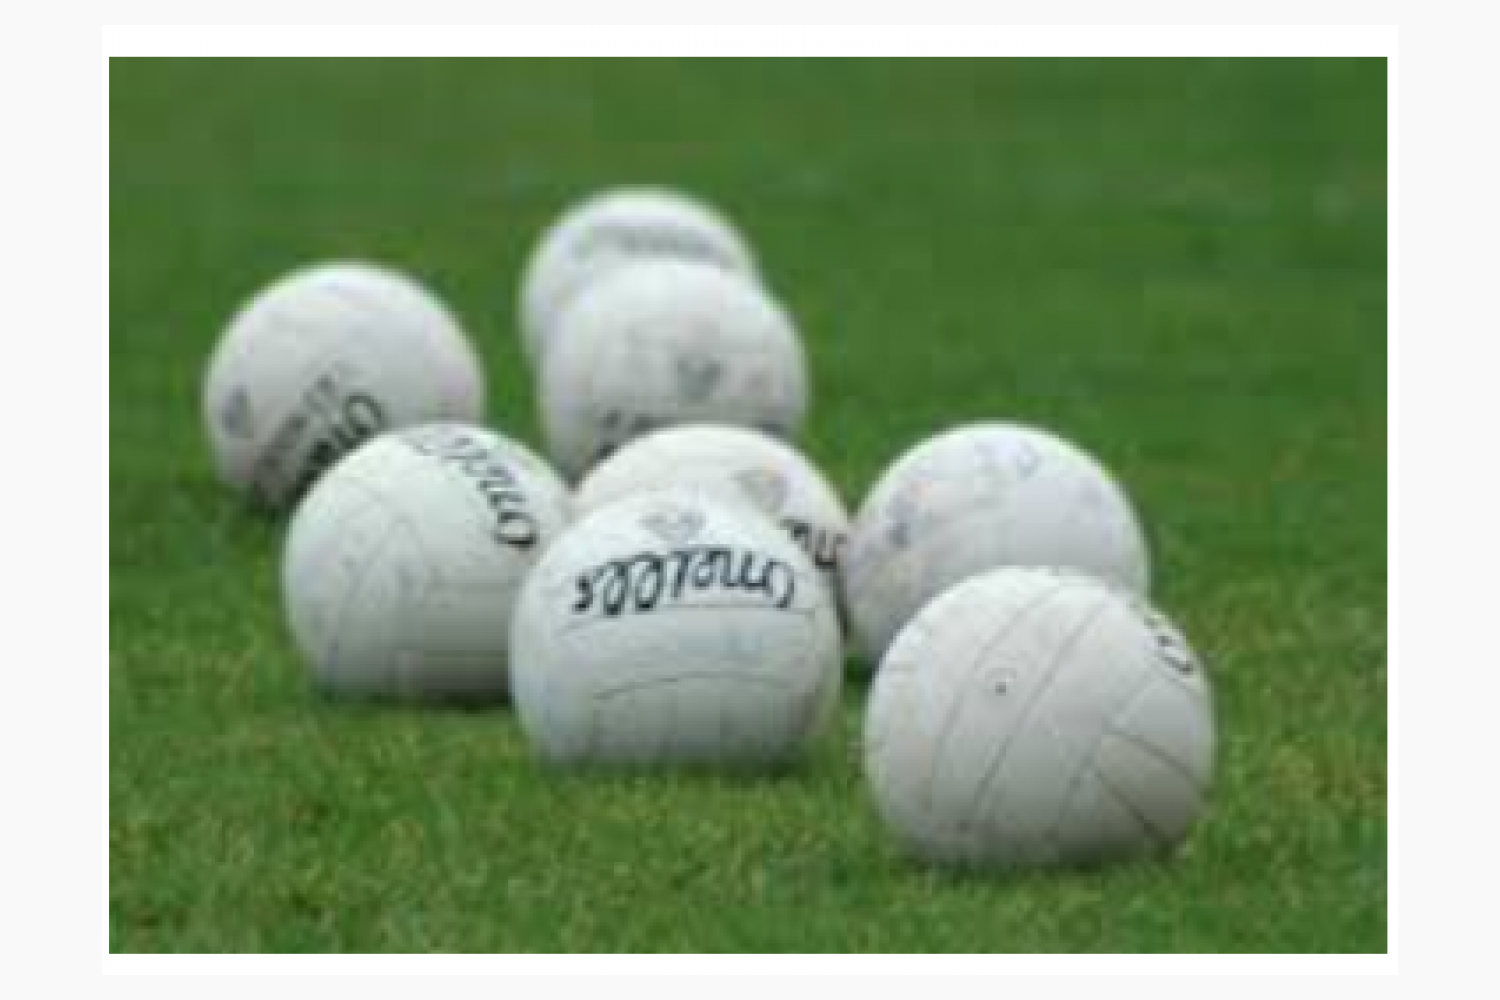 Leinster Football Final Ticket Requests  Dublin V Kildare Sunday July 16th 4pm Croke park